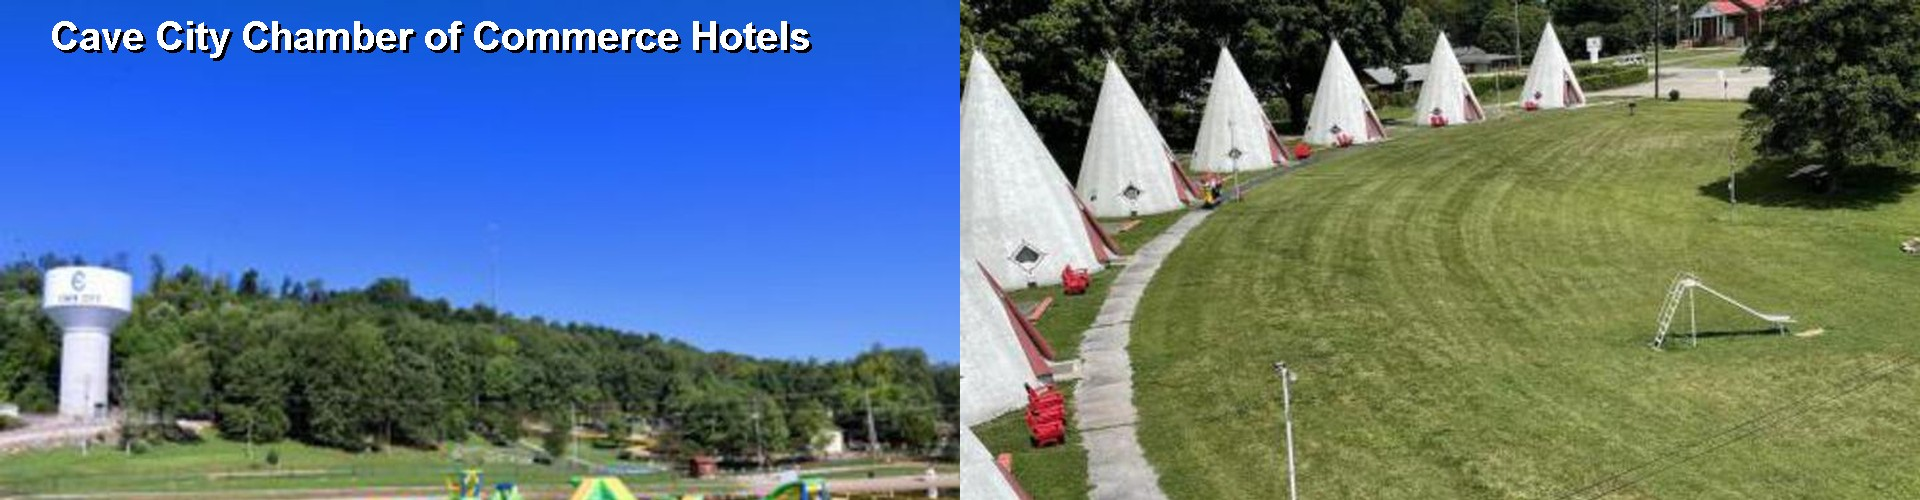 5 Best Hotels near Cave City Chamber of Commerce